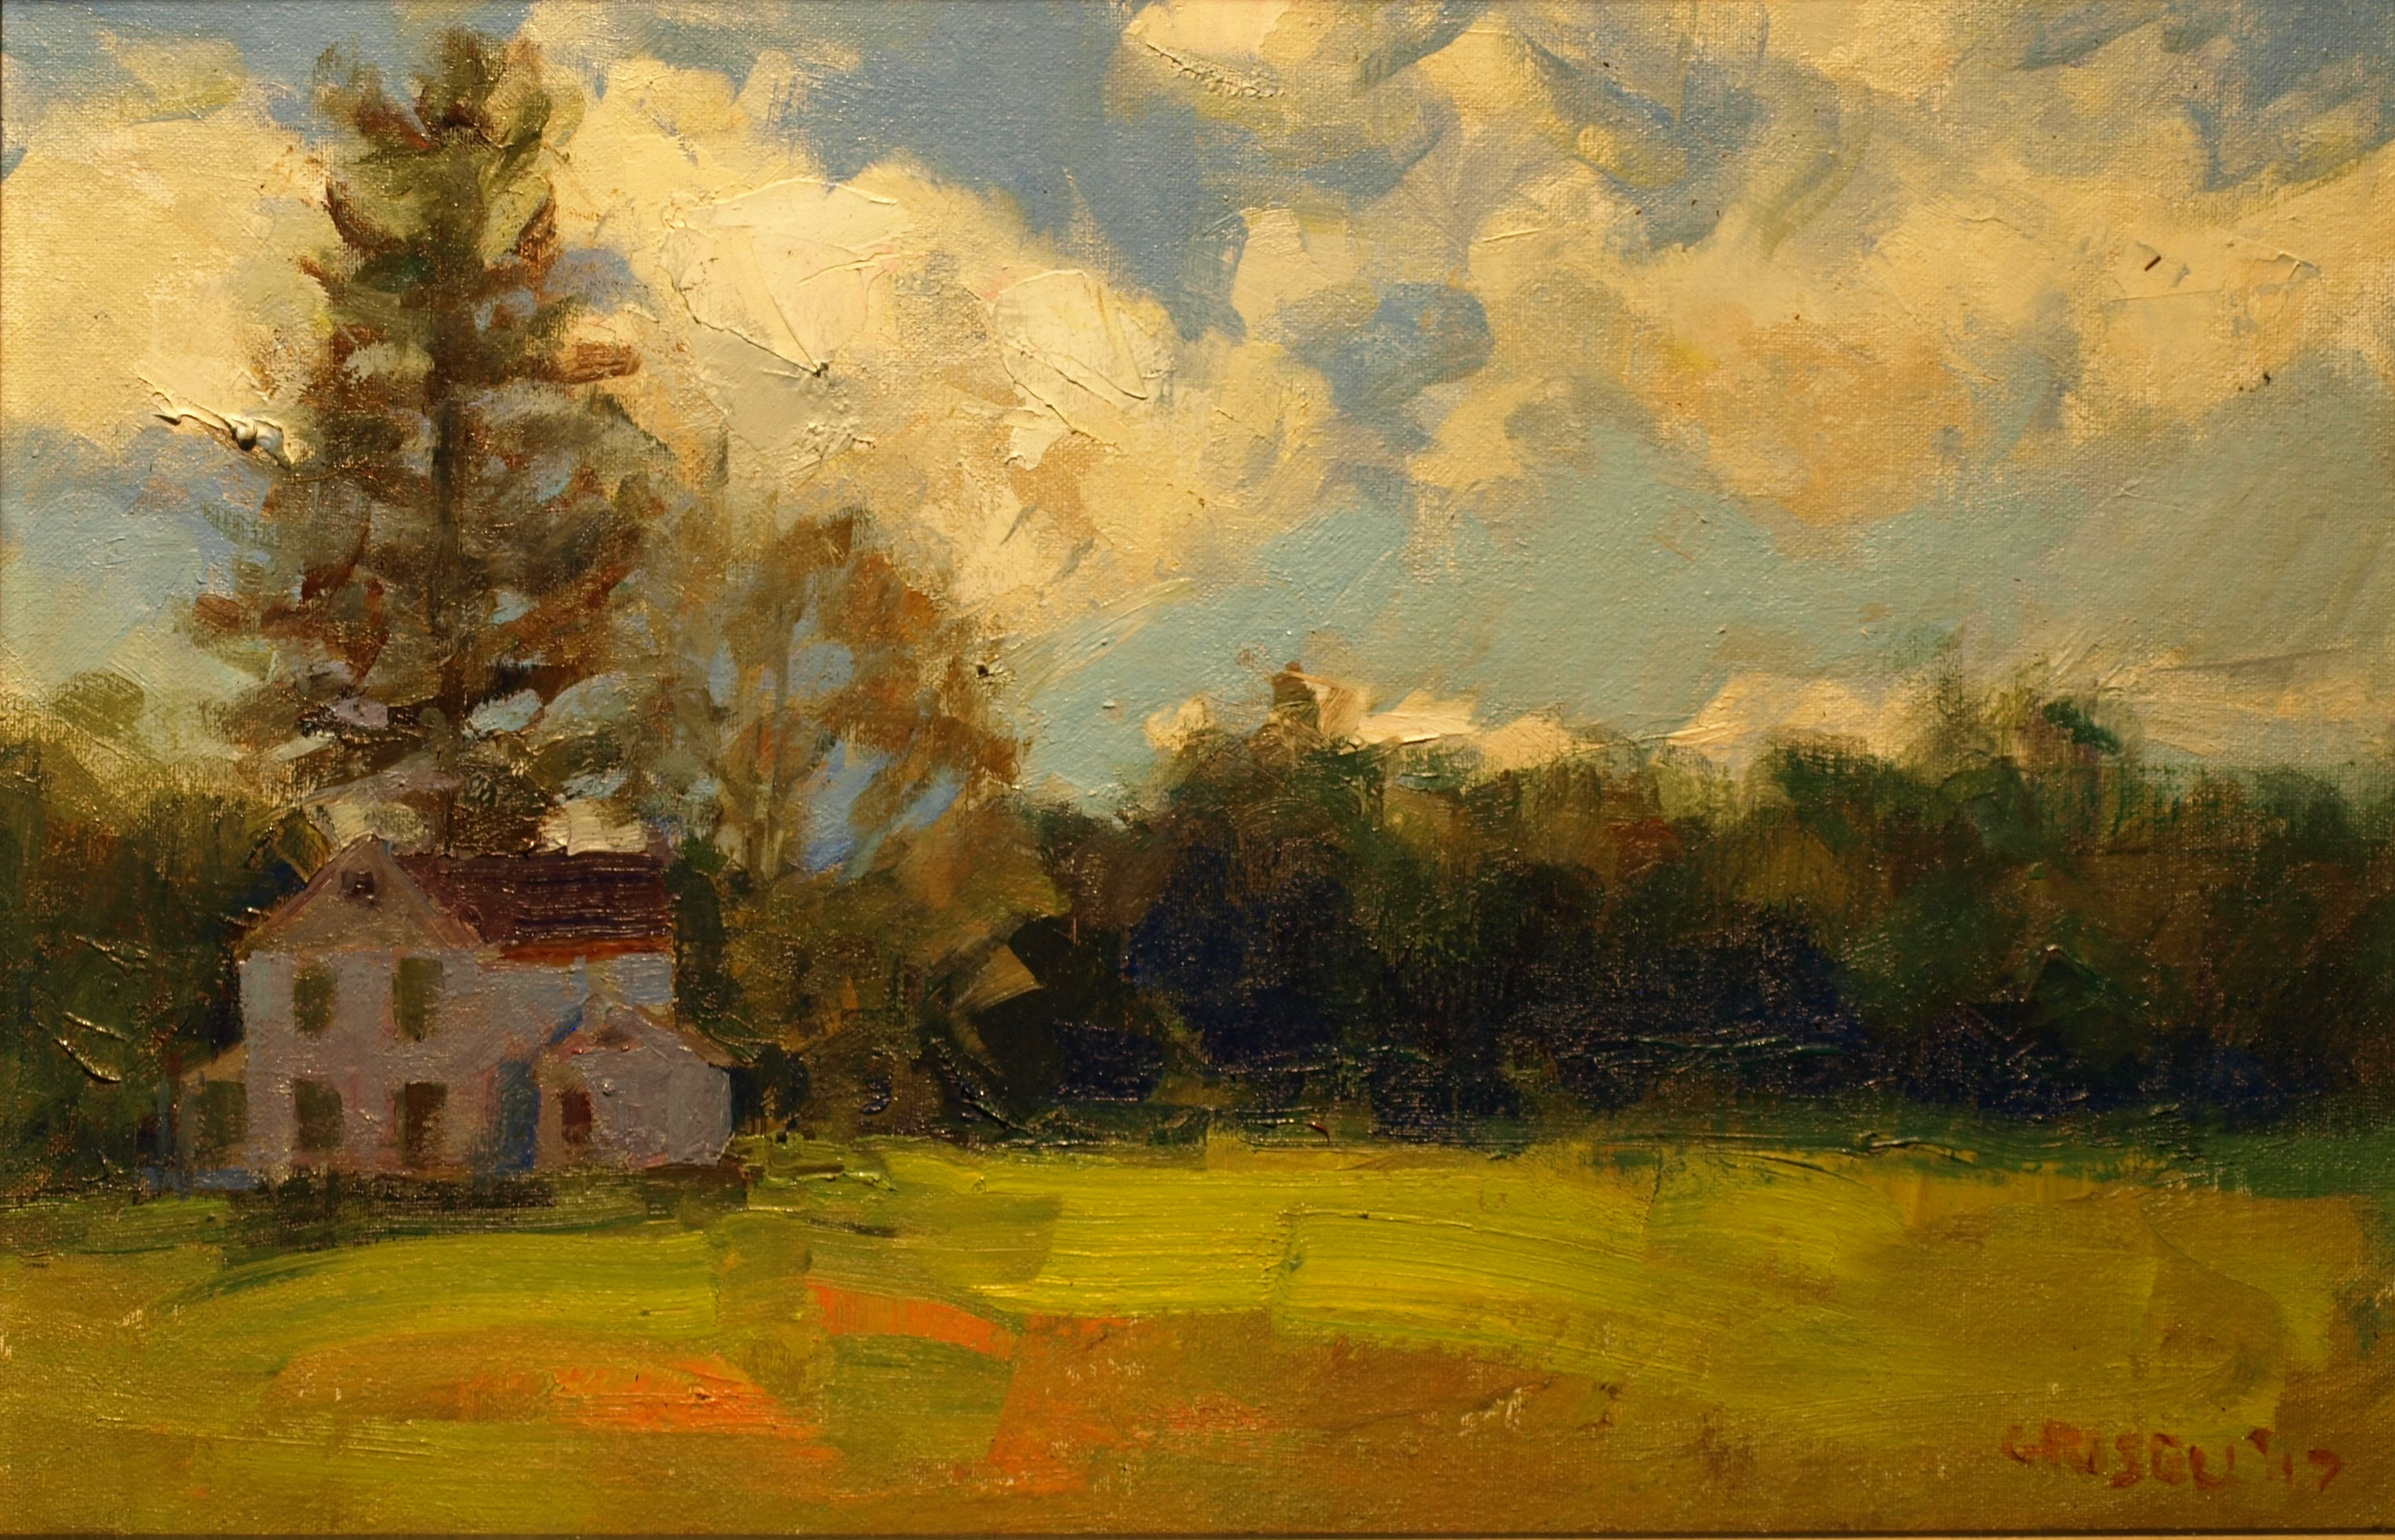 September Clouds, Oil on Canvas on Panel, 12 x 18 Inches, by Susan Grisell, $300